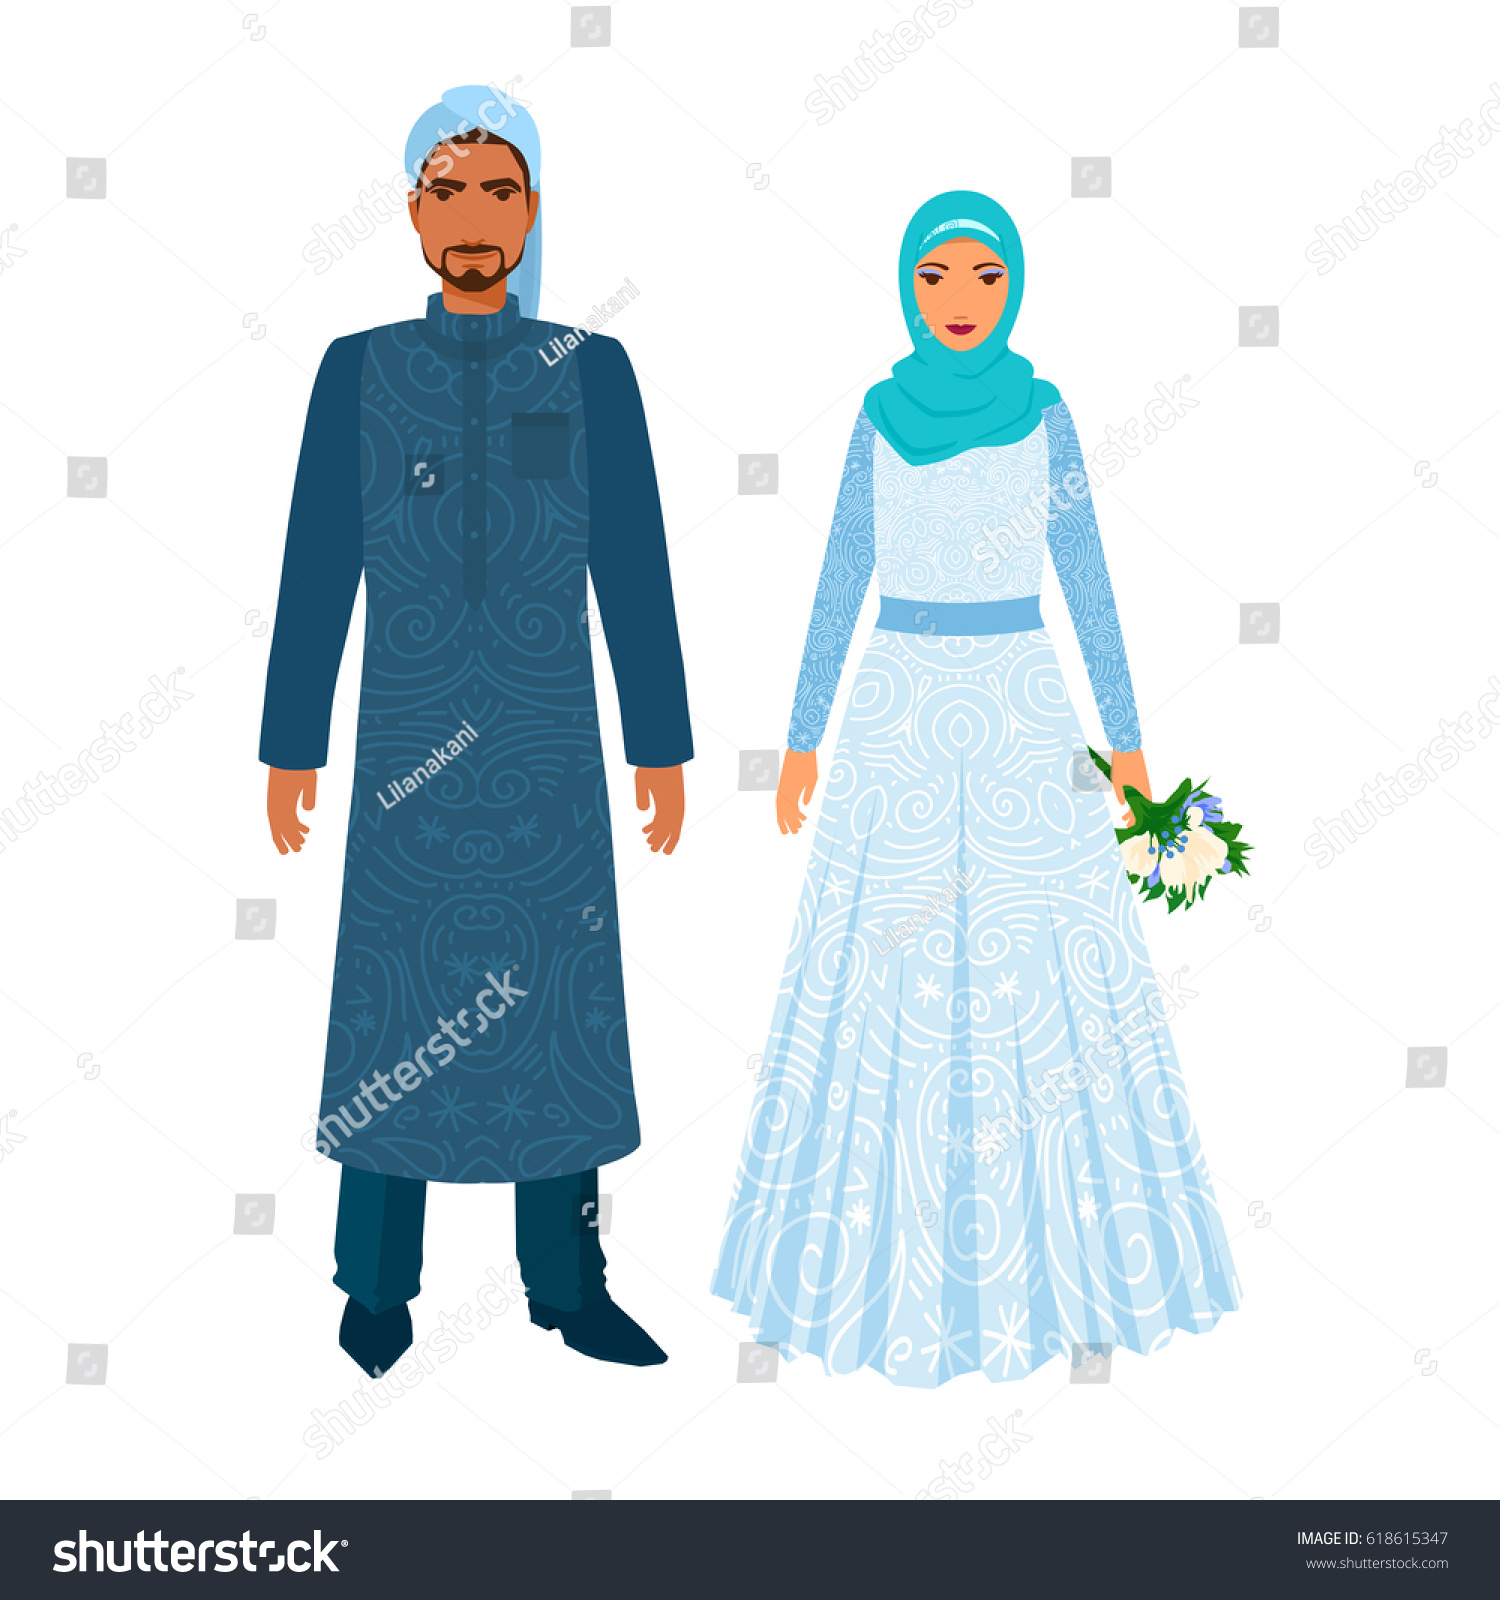 national stock yards muslim dating site Advance computing gets dynamic with disability service provider's microsoft  project microsoft partner helps not-for-profit to find a system.